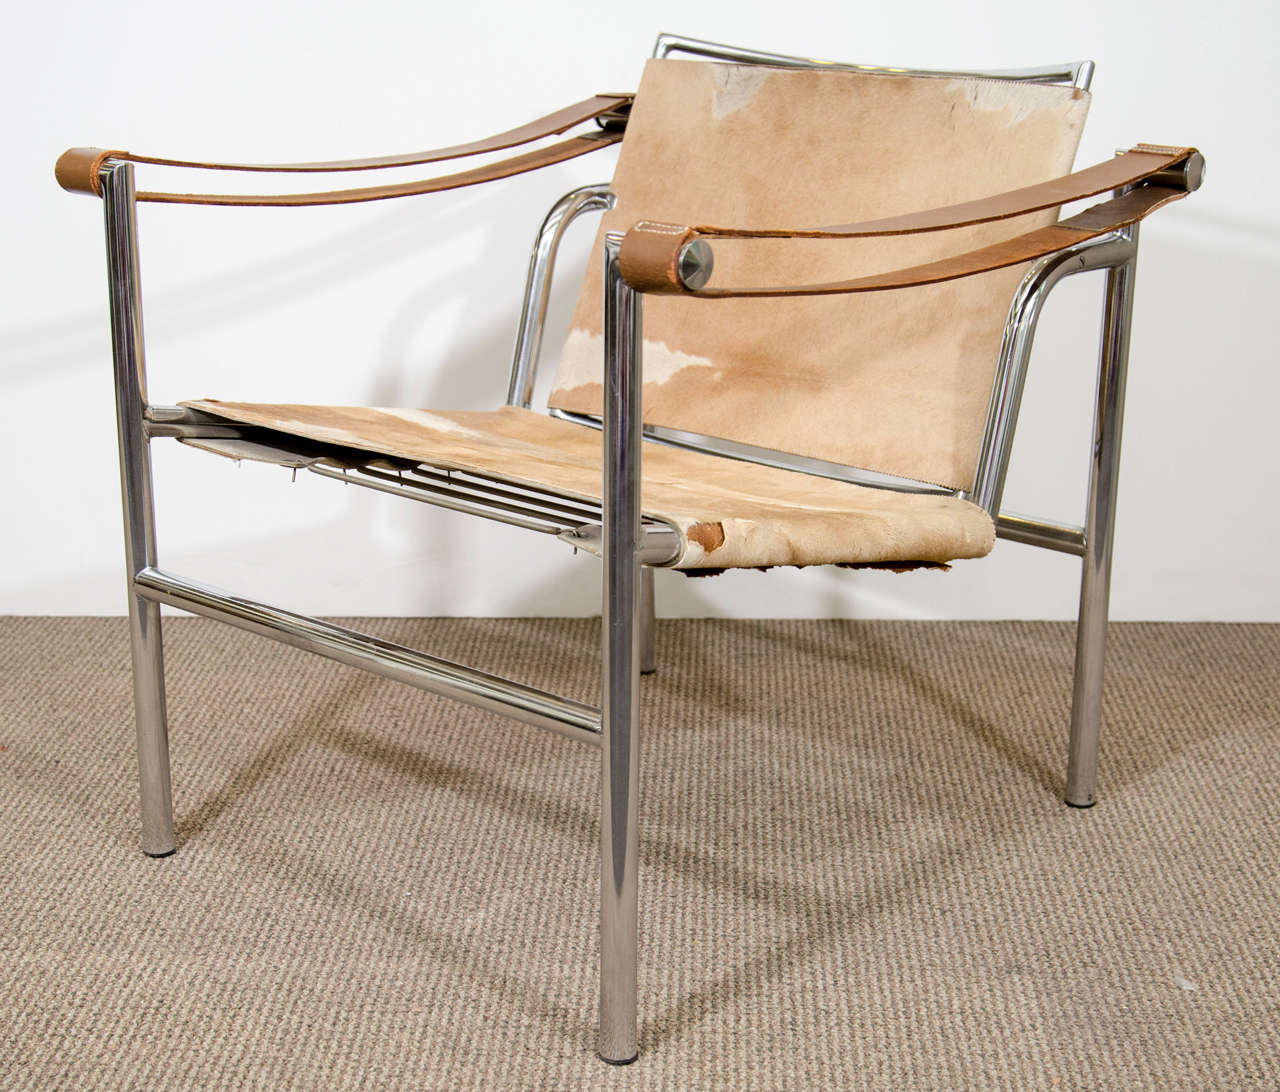 A Vintage LC1 Sling Chair In Cowhide With Adjustable Back, Leather Armrests  And A Tubular